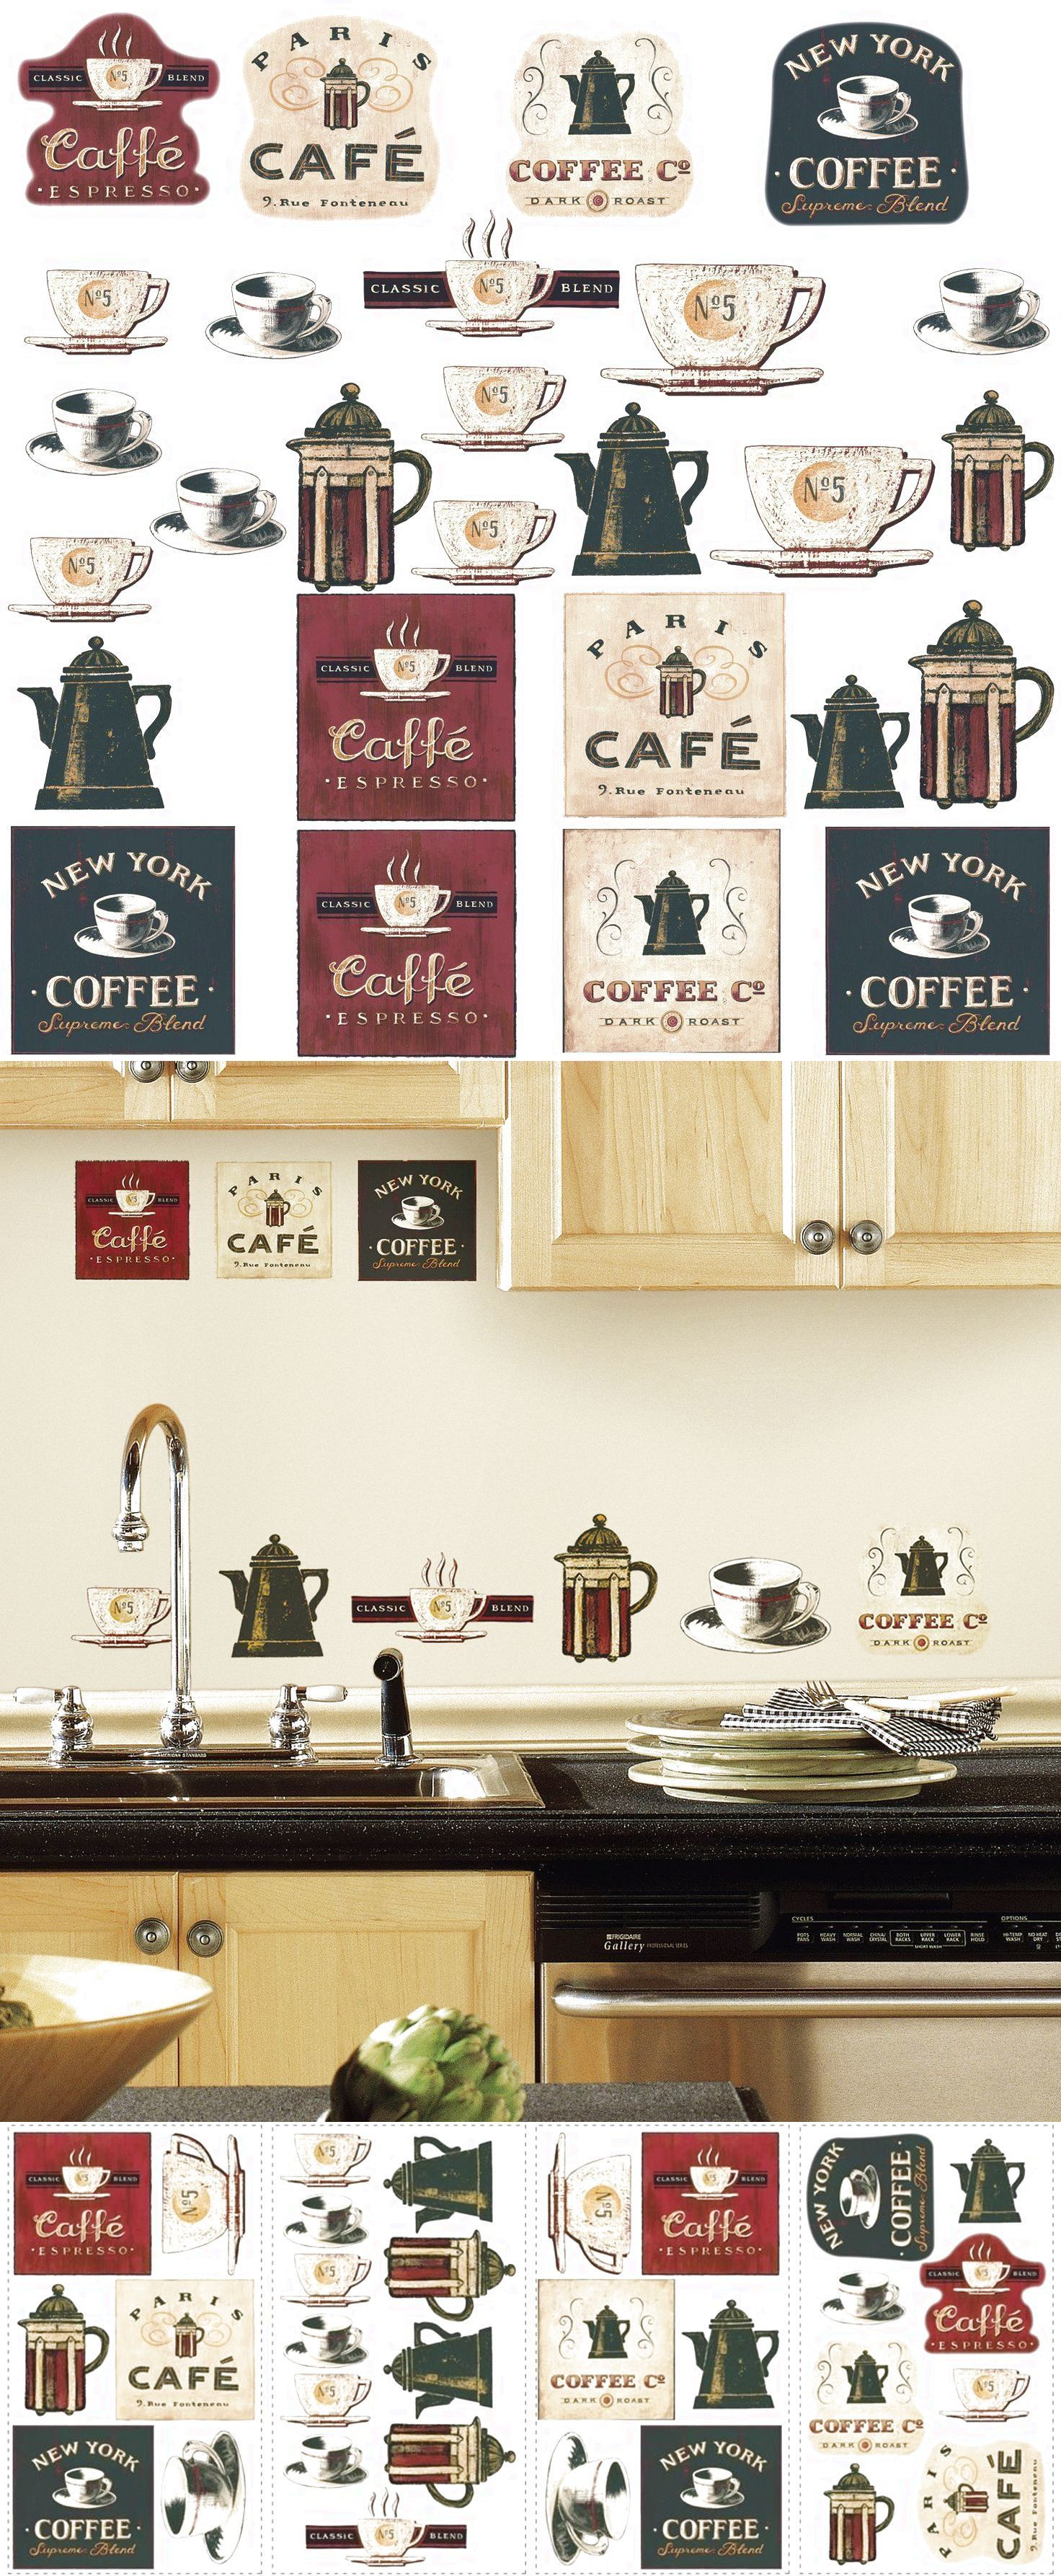 Coffee house big wall stickers room decor kitchen labels cups pot